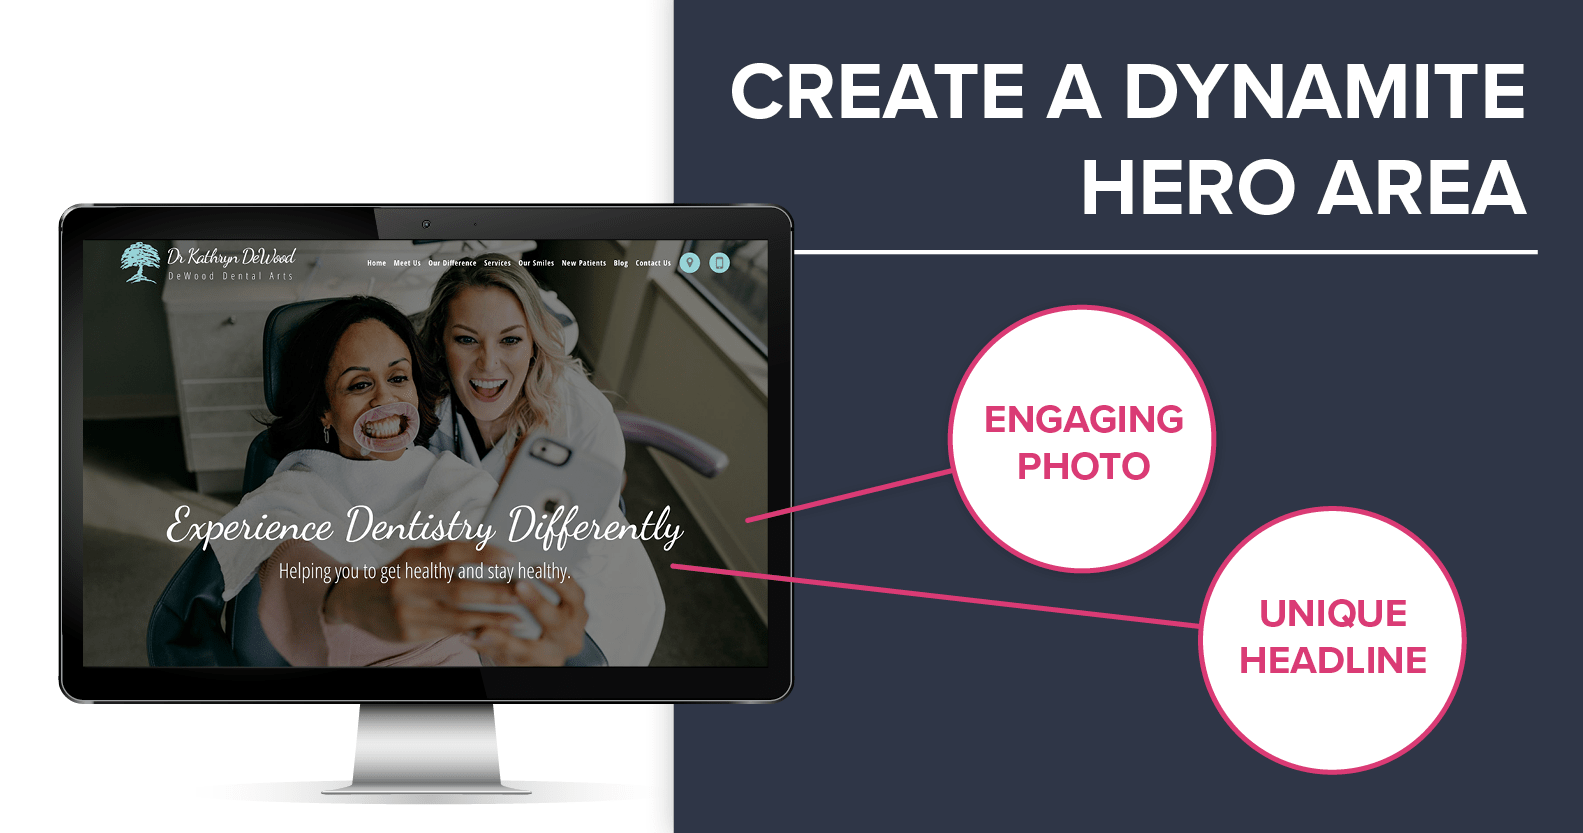 Create a dynamite hero on your dental website with an engaging photo and unique headline